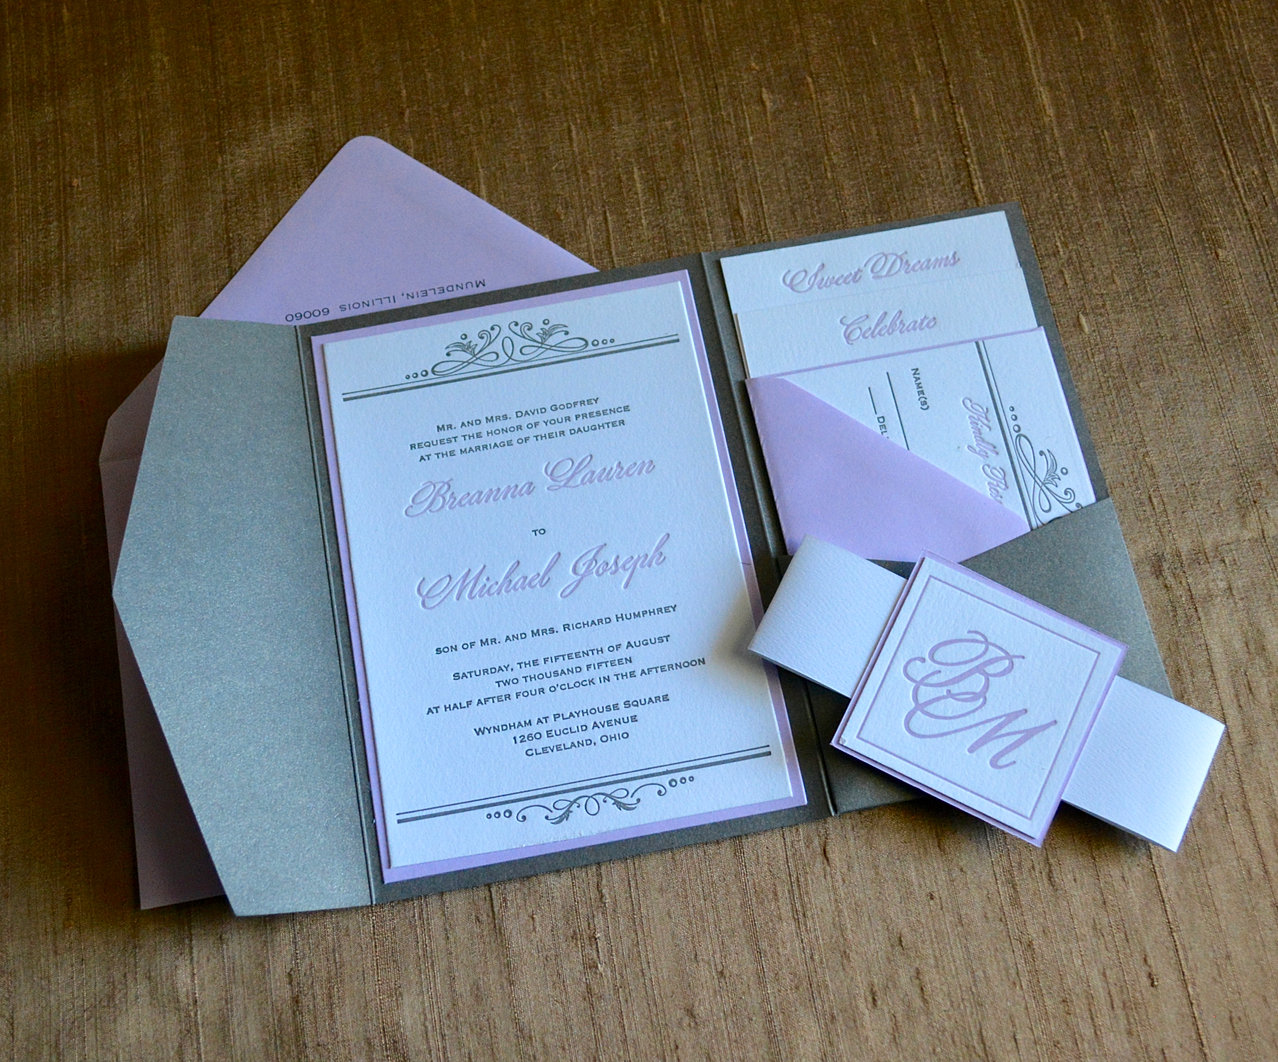 Lucky invitations custom letterpress wedding invitations chicago lavender letterpress invitation monicamarmolfo Image collections